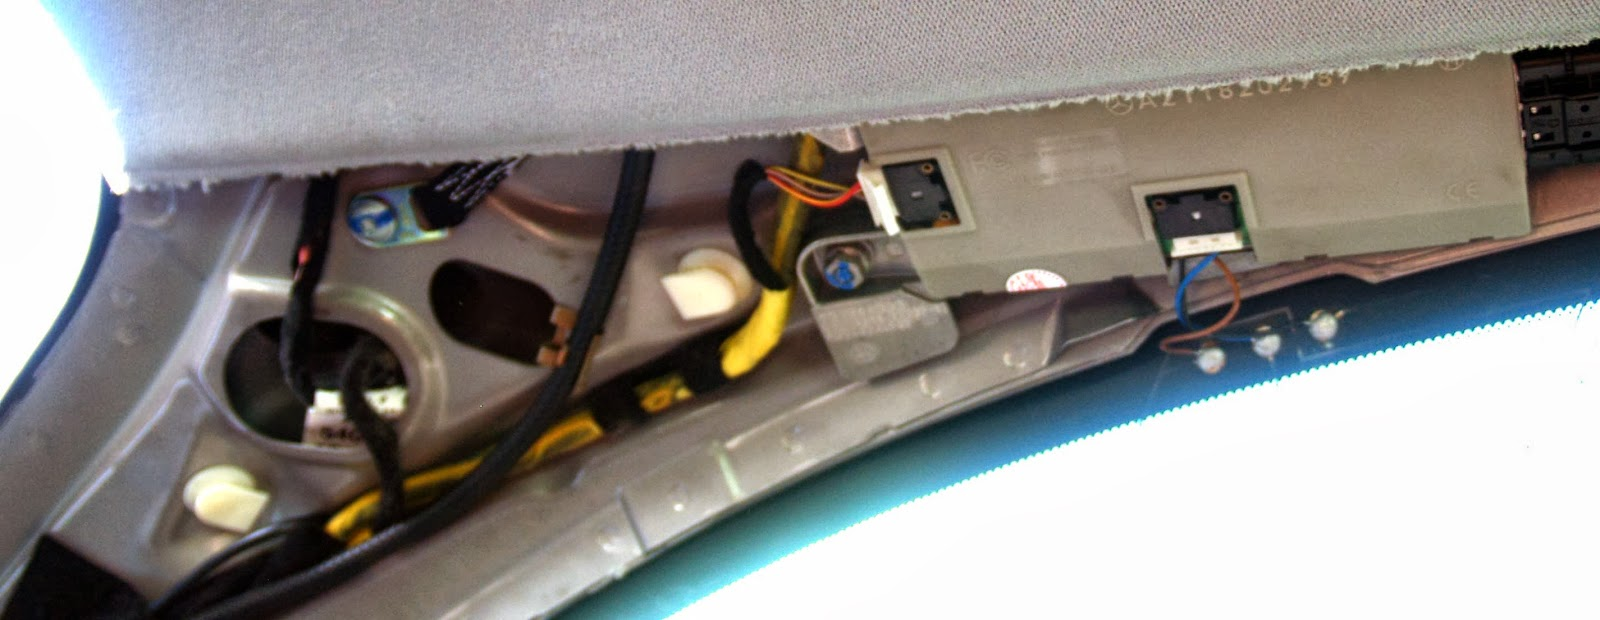 How To Use A Multimeter On A Car Amplifier